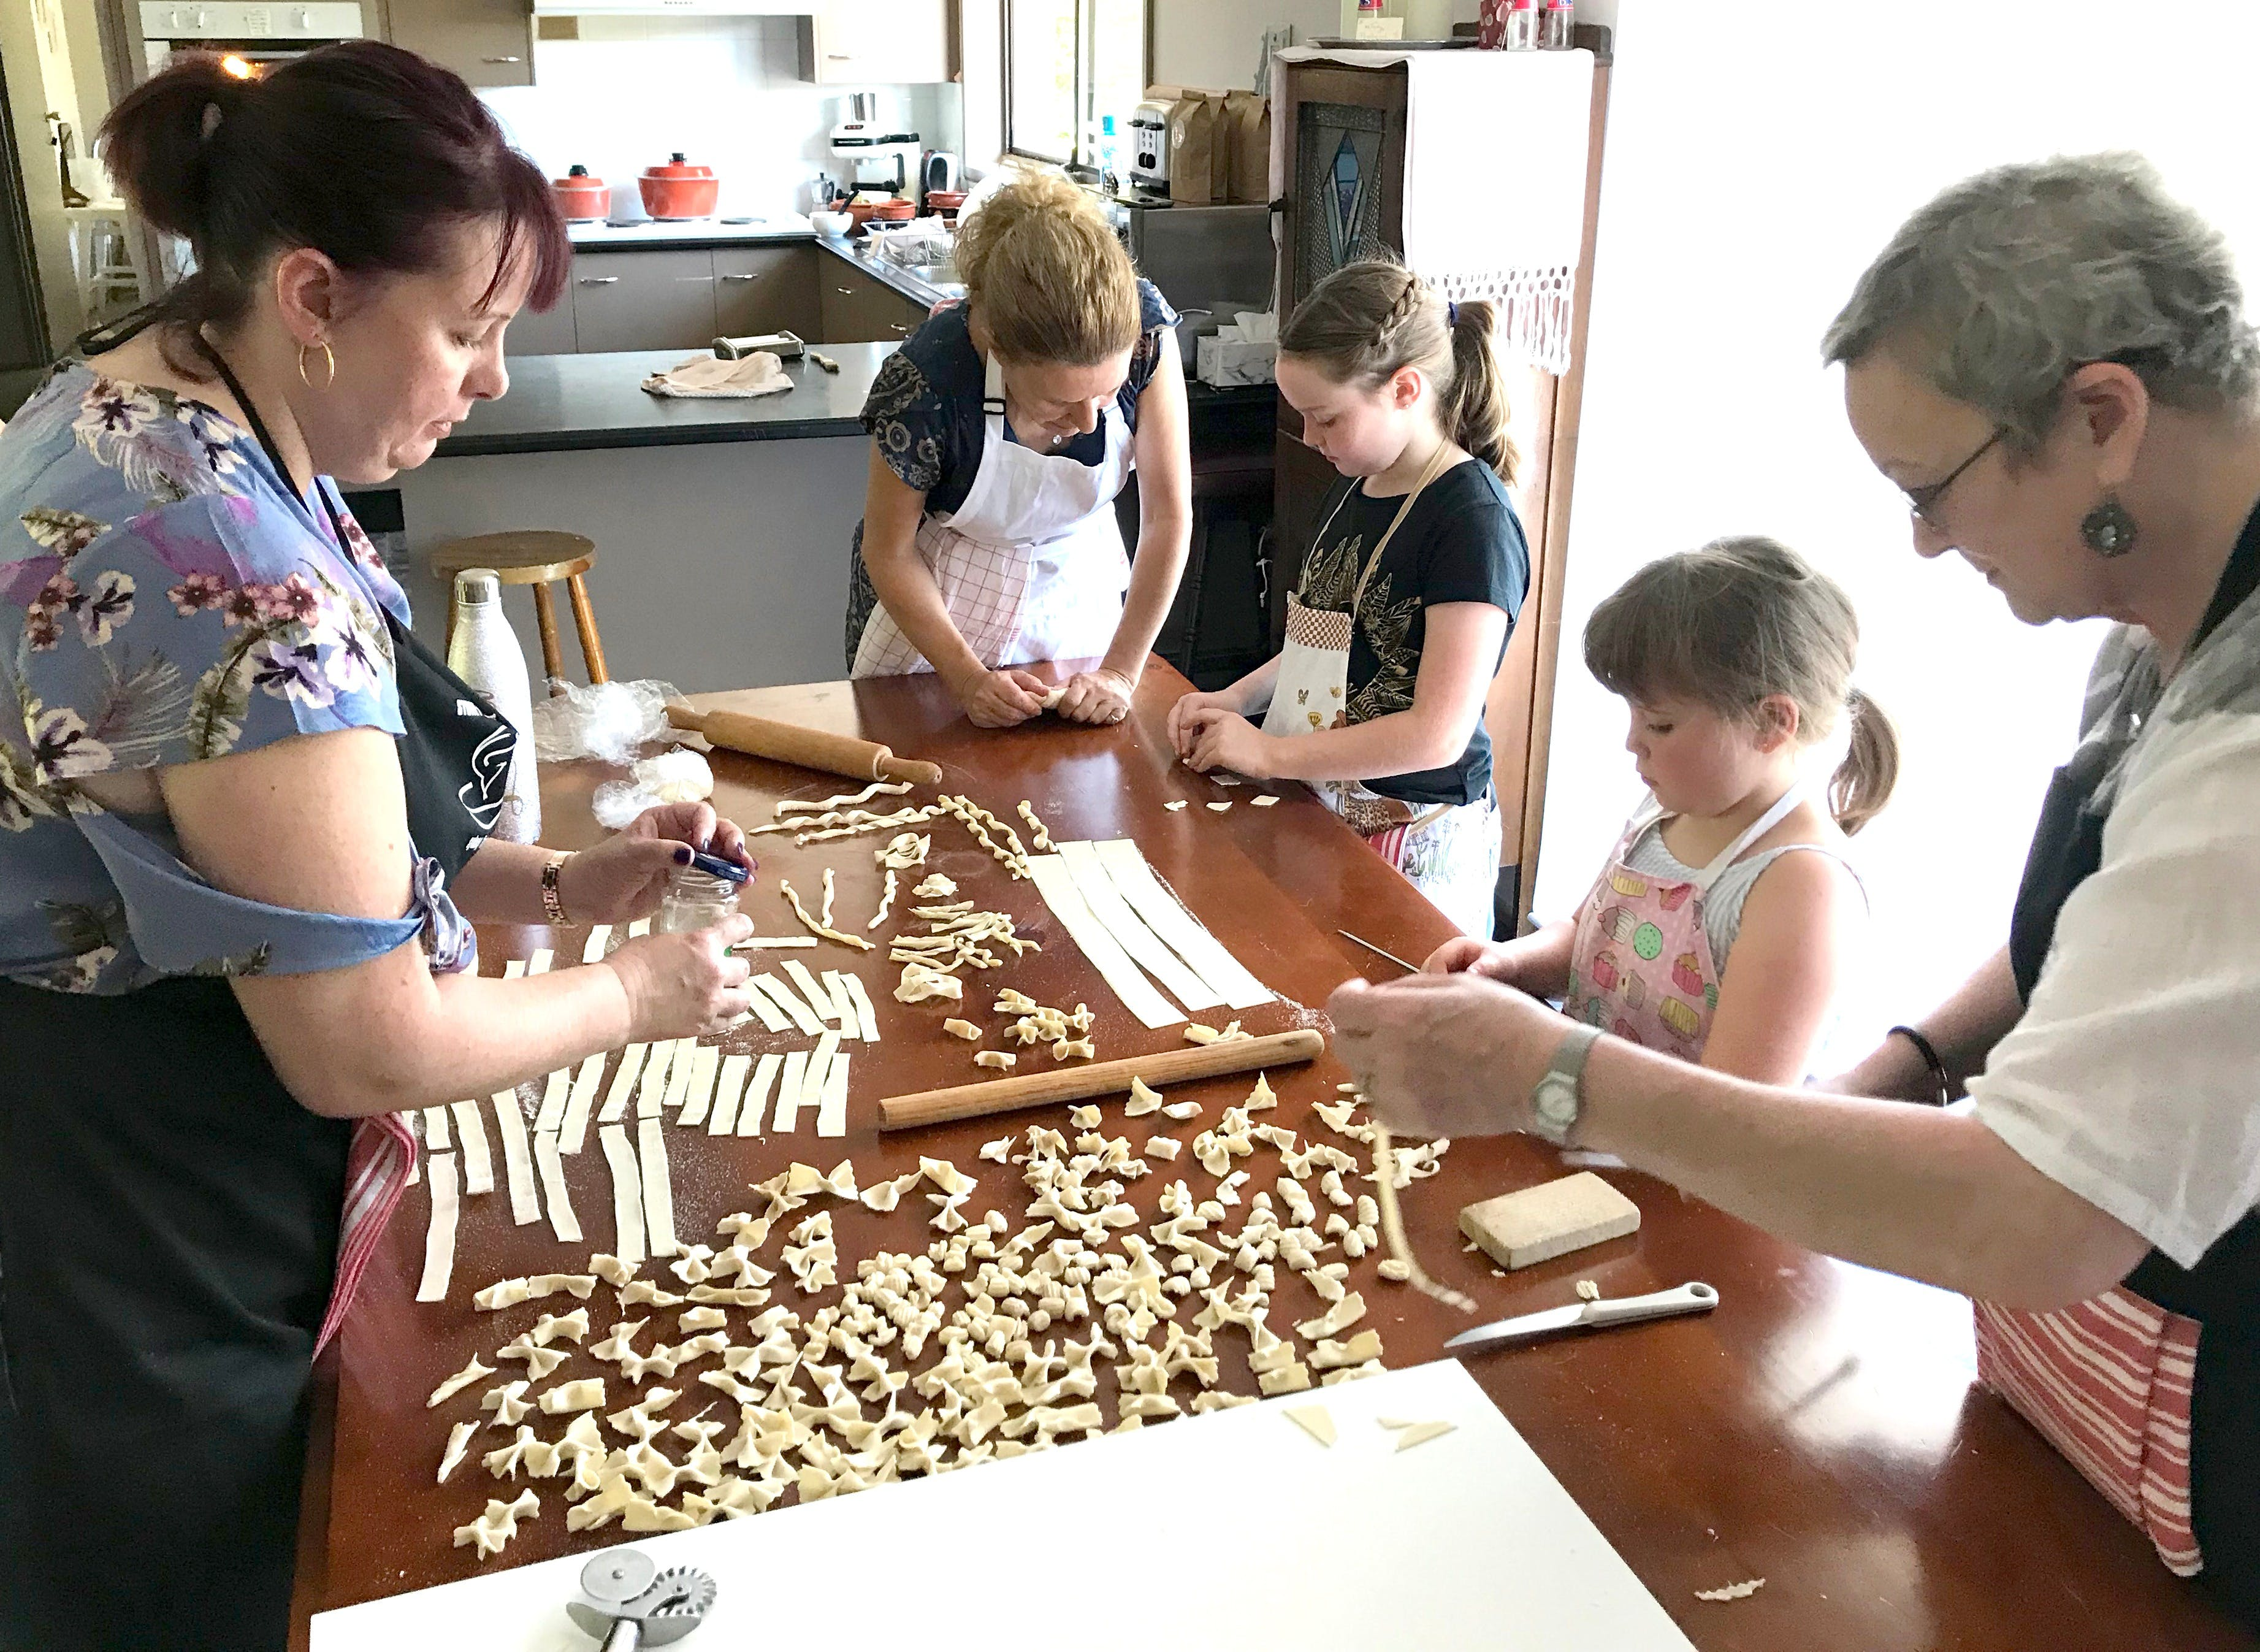 Kids Pasta Making Class - hands on fun at your house - Port Augusta Accommodation